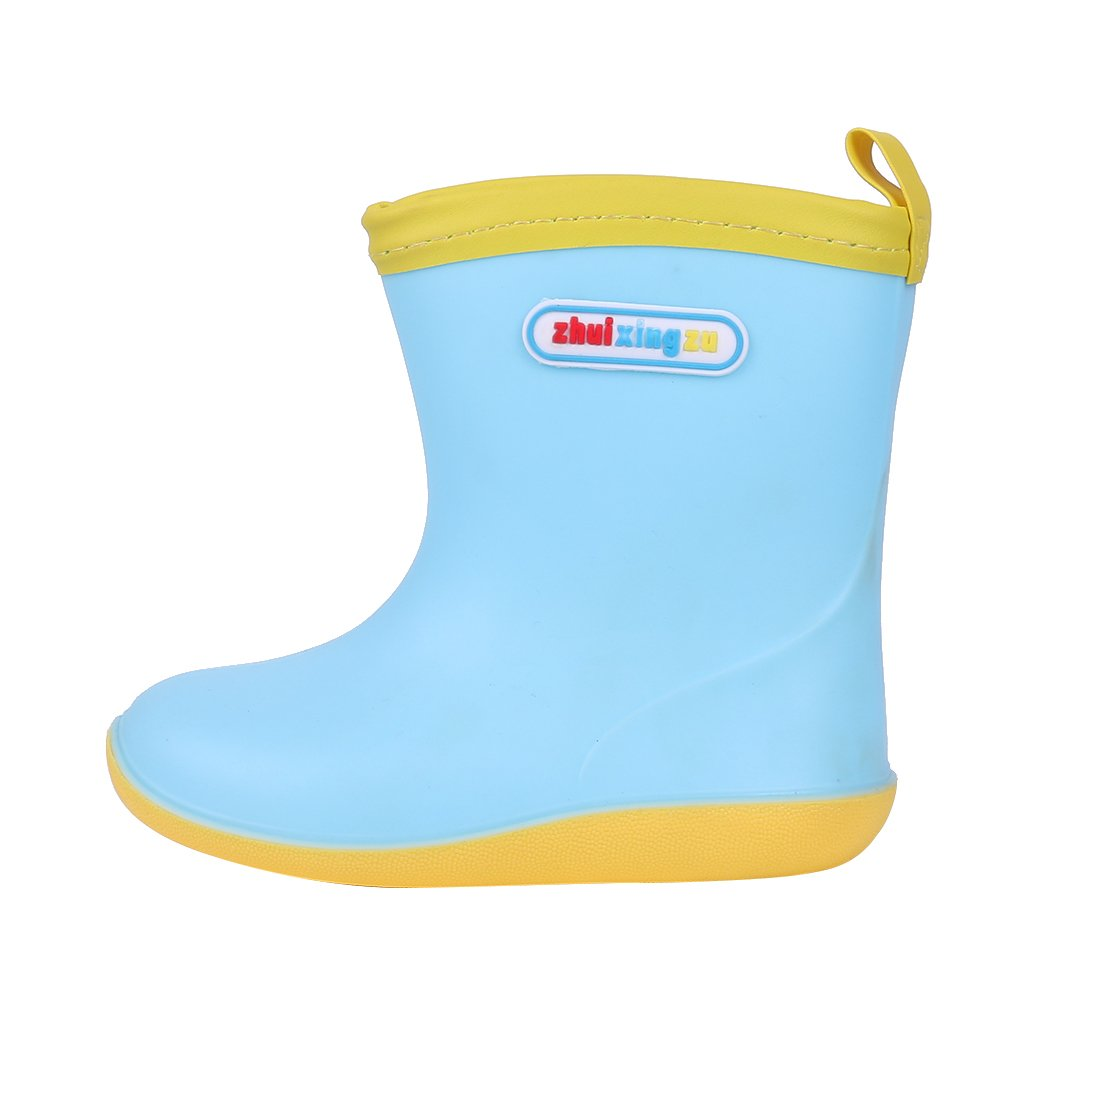 Asgard Cute Rain Boots for Kids Waterproof Candy Color Ankel Rubber Boots, with Warm Cosy Soft Socks B16 by Asgard (Image #3)